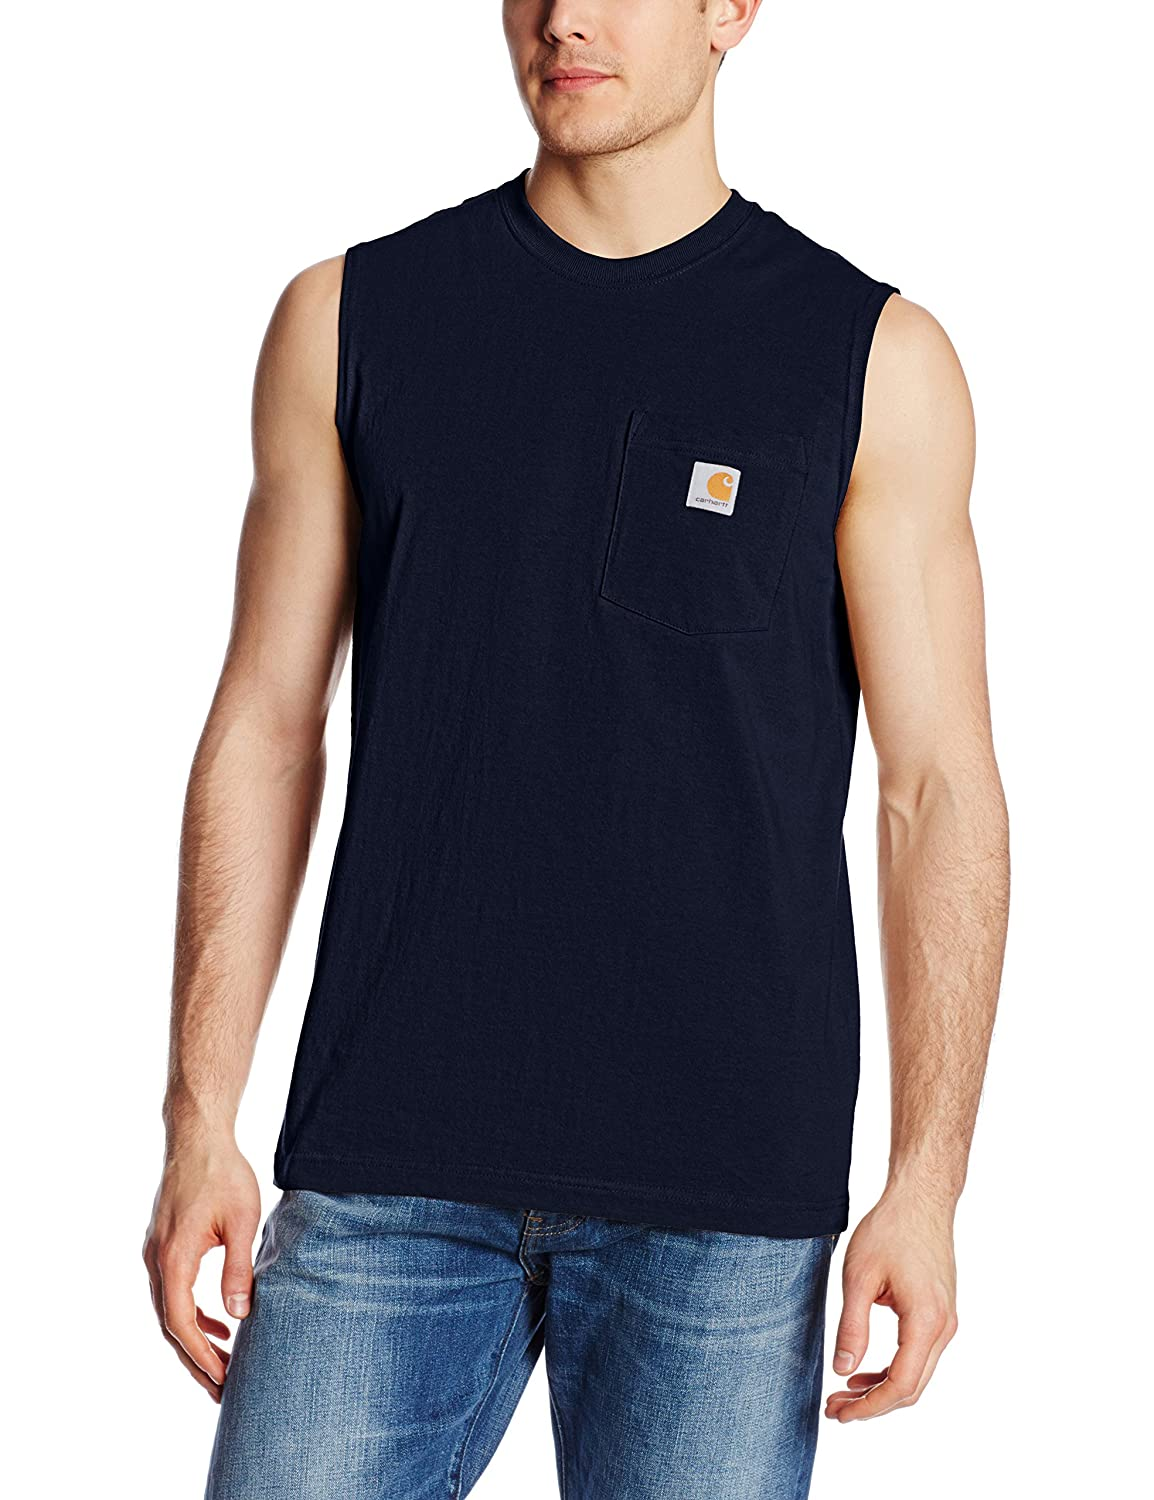 Carhartt Men's Workwear Pocket Sleeveless Midweight T-Shirt Carhartt Sportswear - Mens 100374